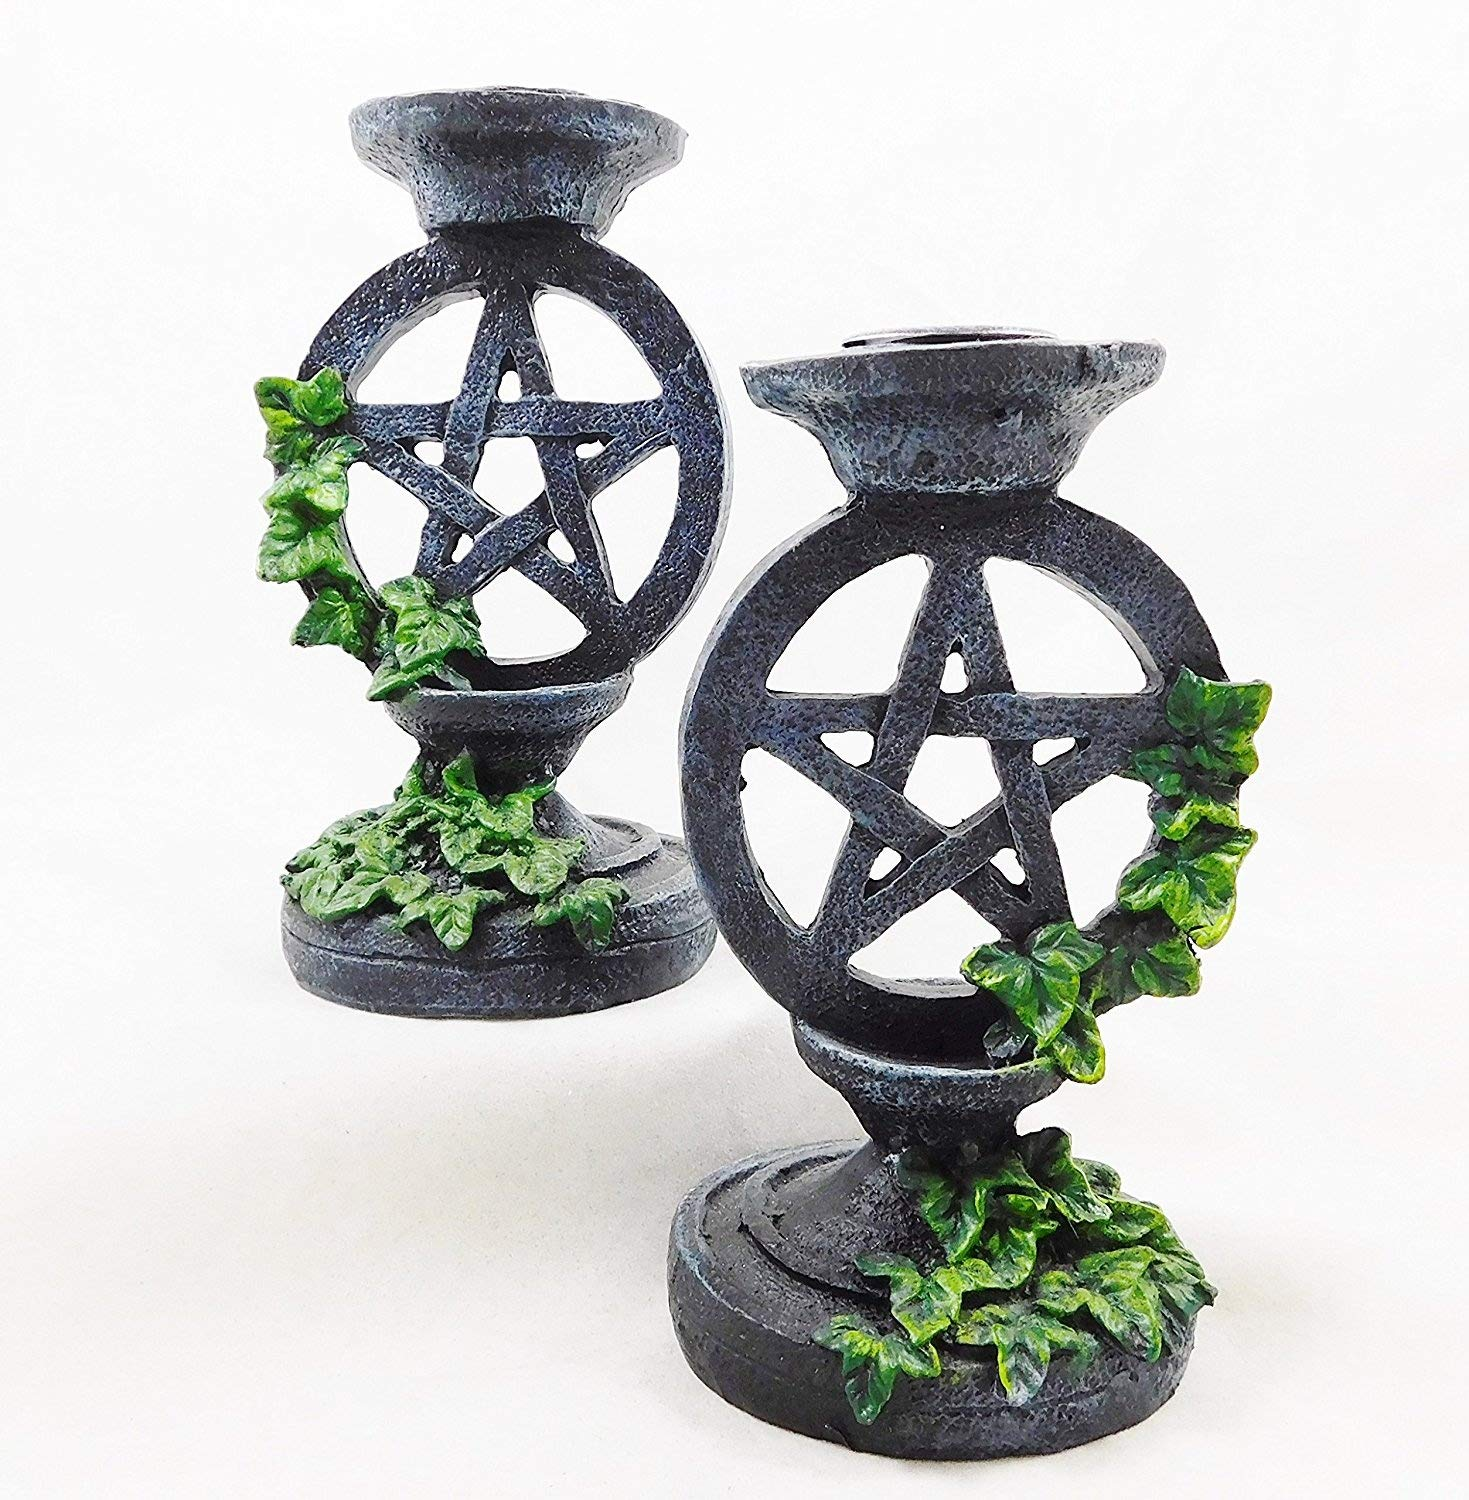 Wiccan Gothic Pentagram Candlesticks Set 2 Candle Holders Wicca Witchcraft | 5177 seven secrets